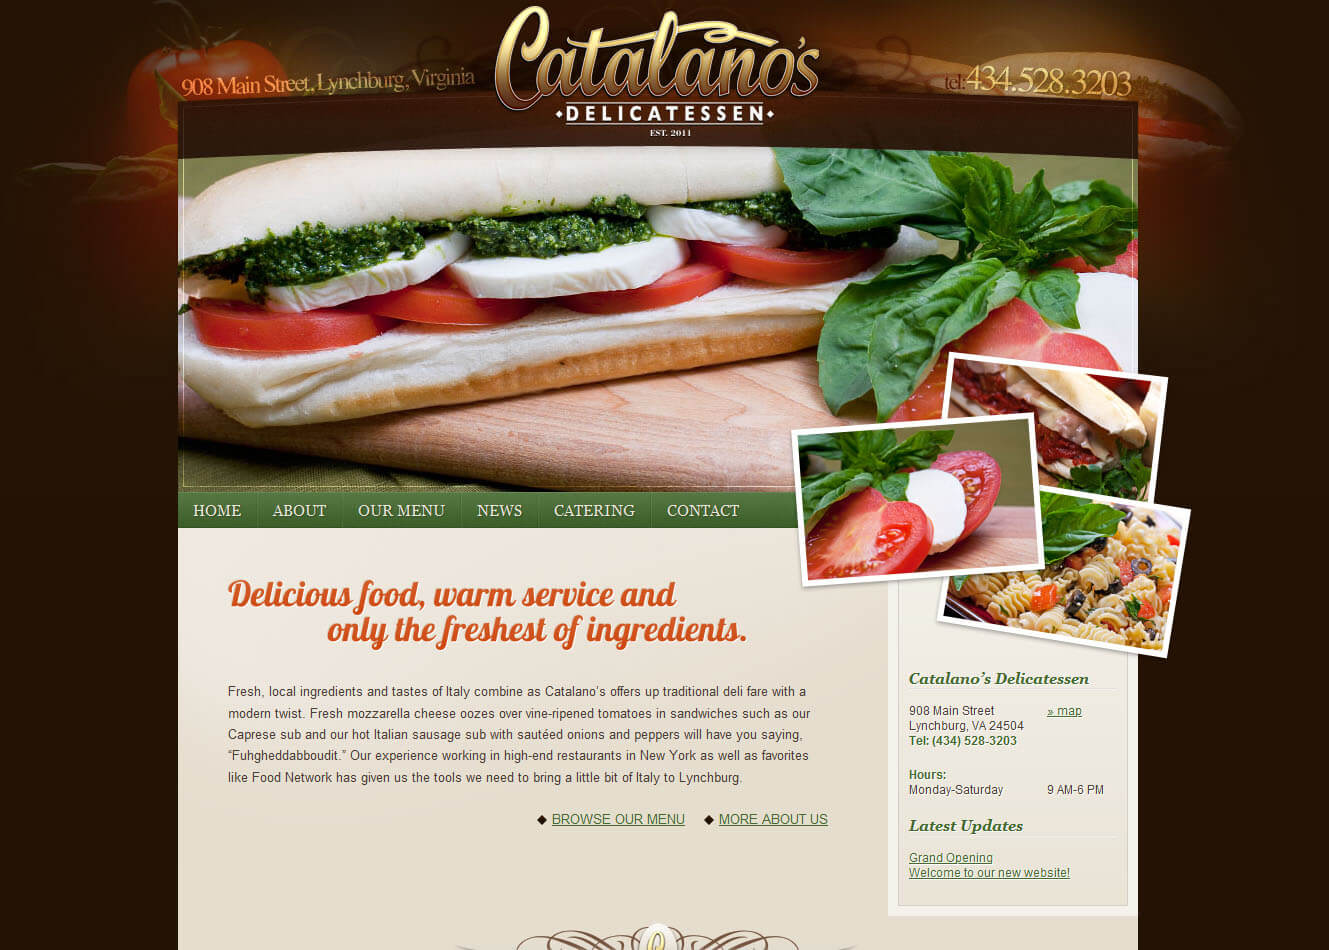 Catalano's Delicatessen